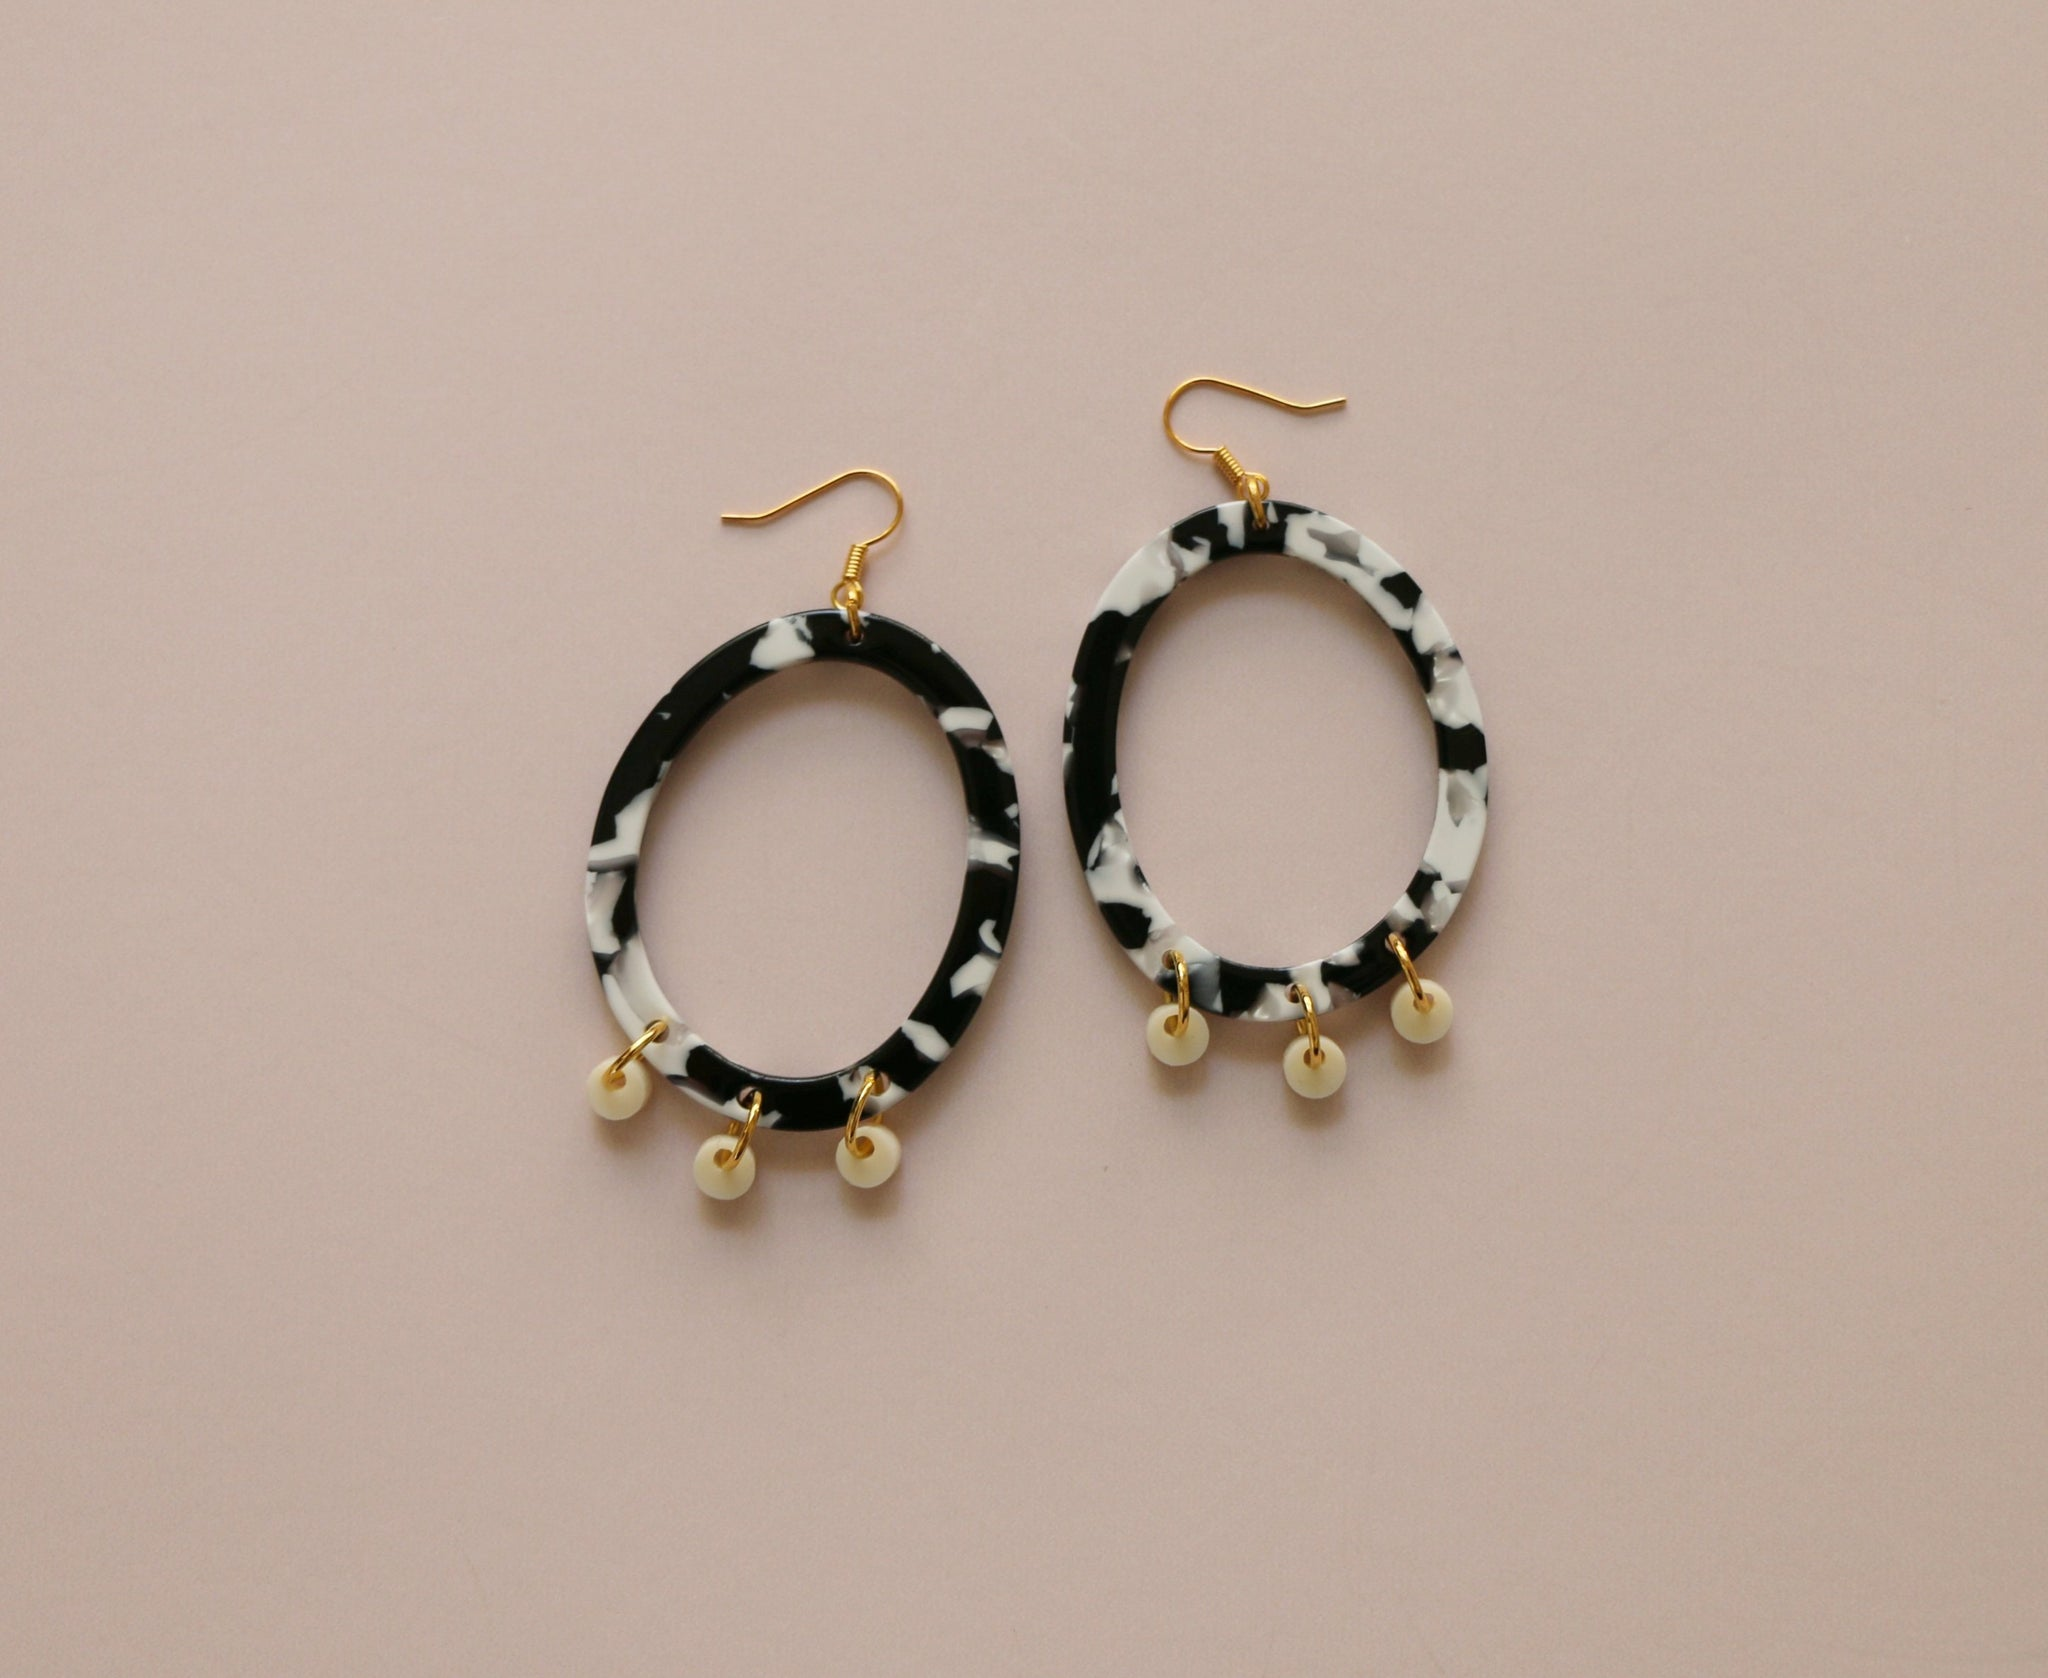 Poppy Earrings - Monochrome